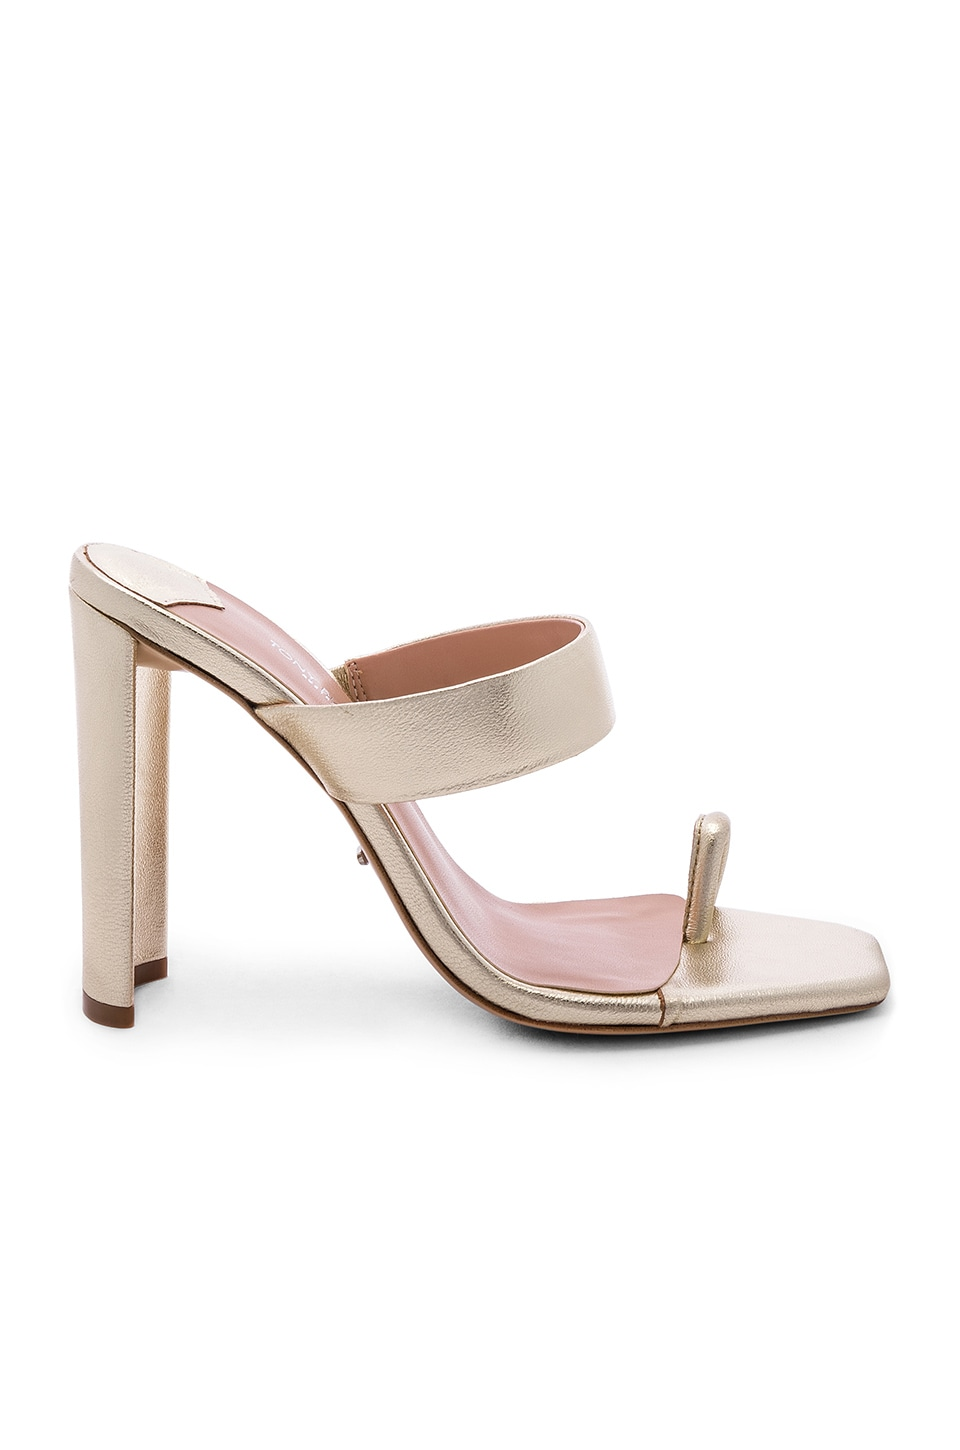 Tony Bianco x REVOLVE Sapphire Heel in Gold Nappa Metallic